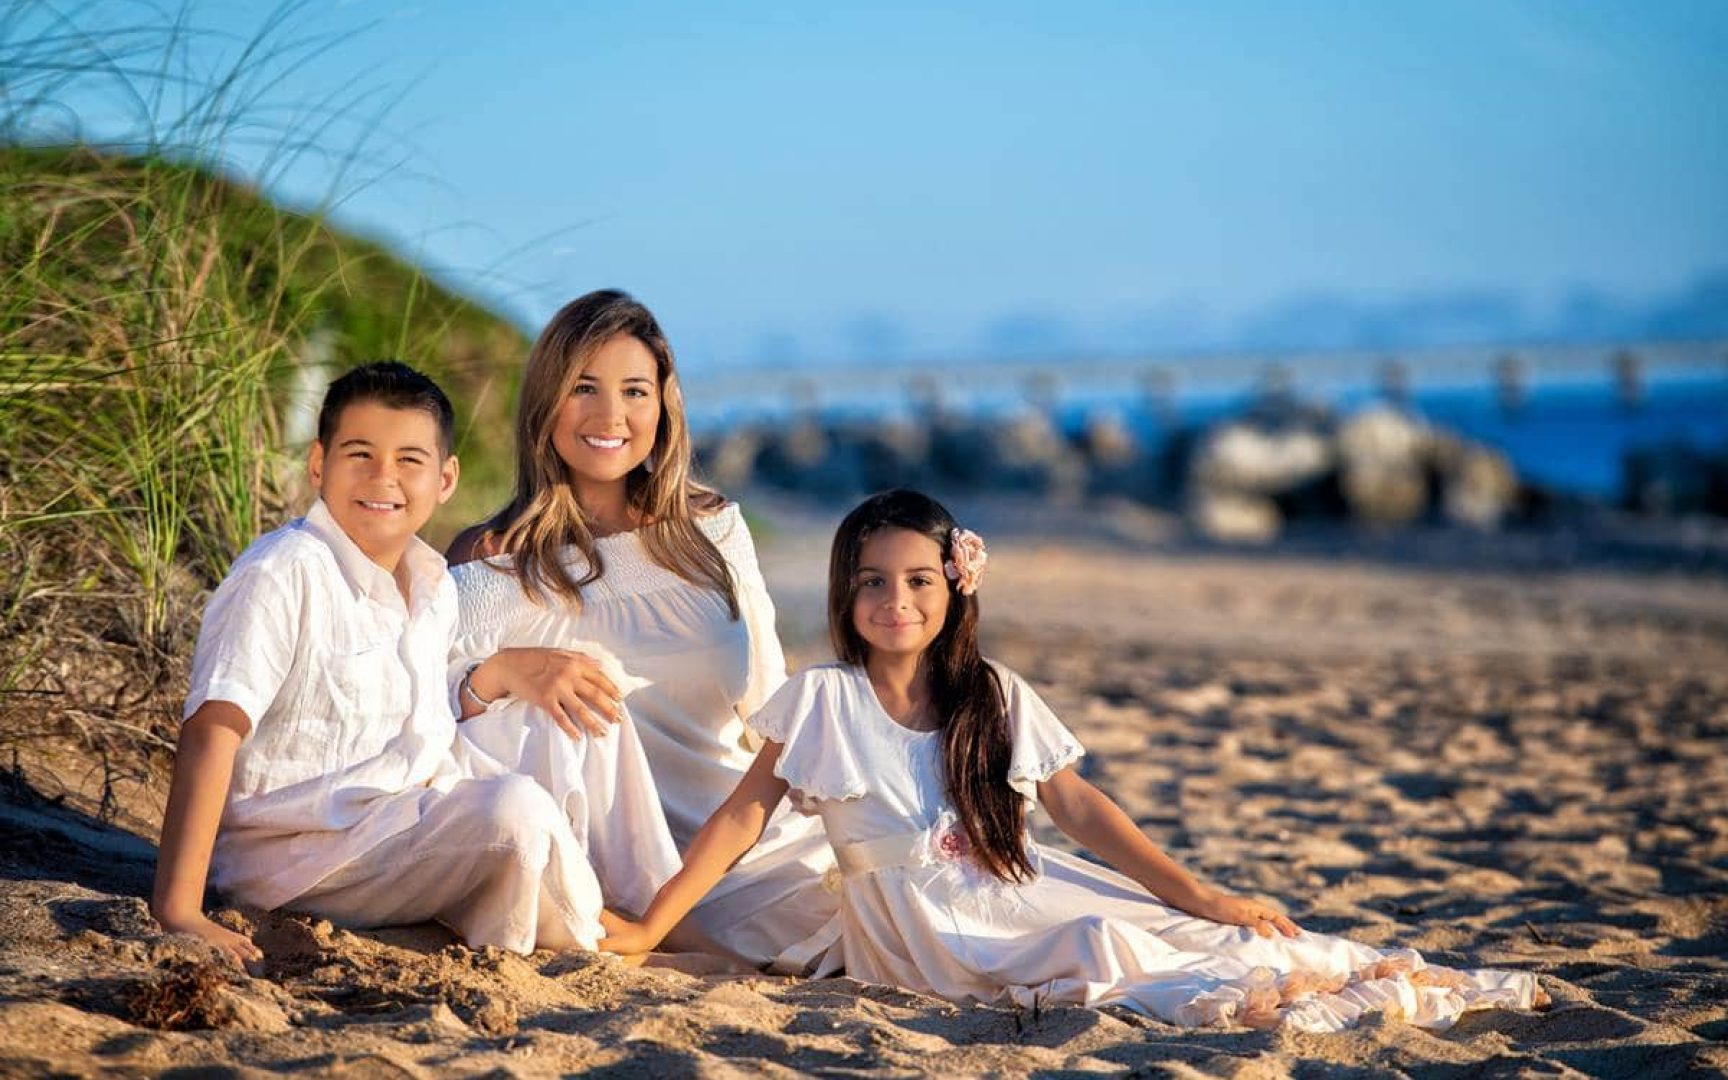 Erika with her Tommy and Gabriela posing for a family photo on the beach.